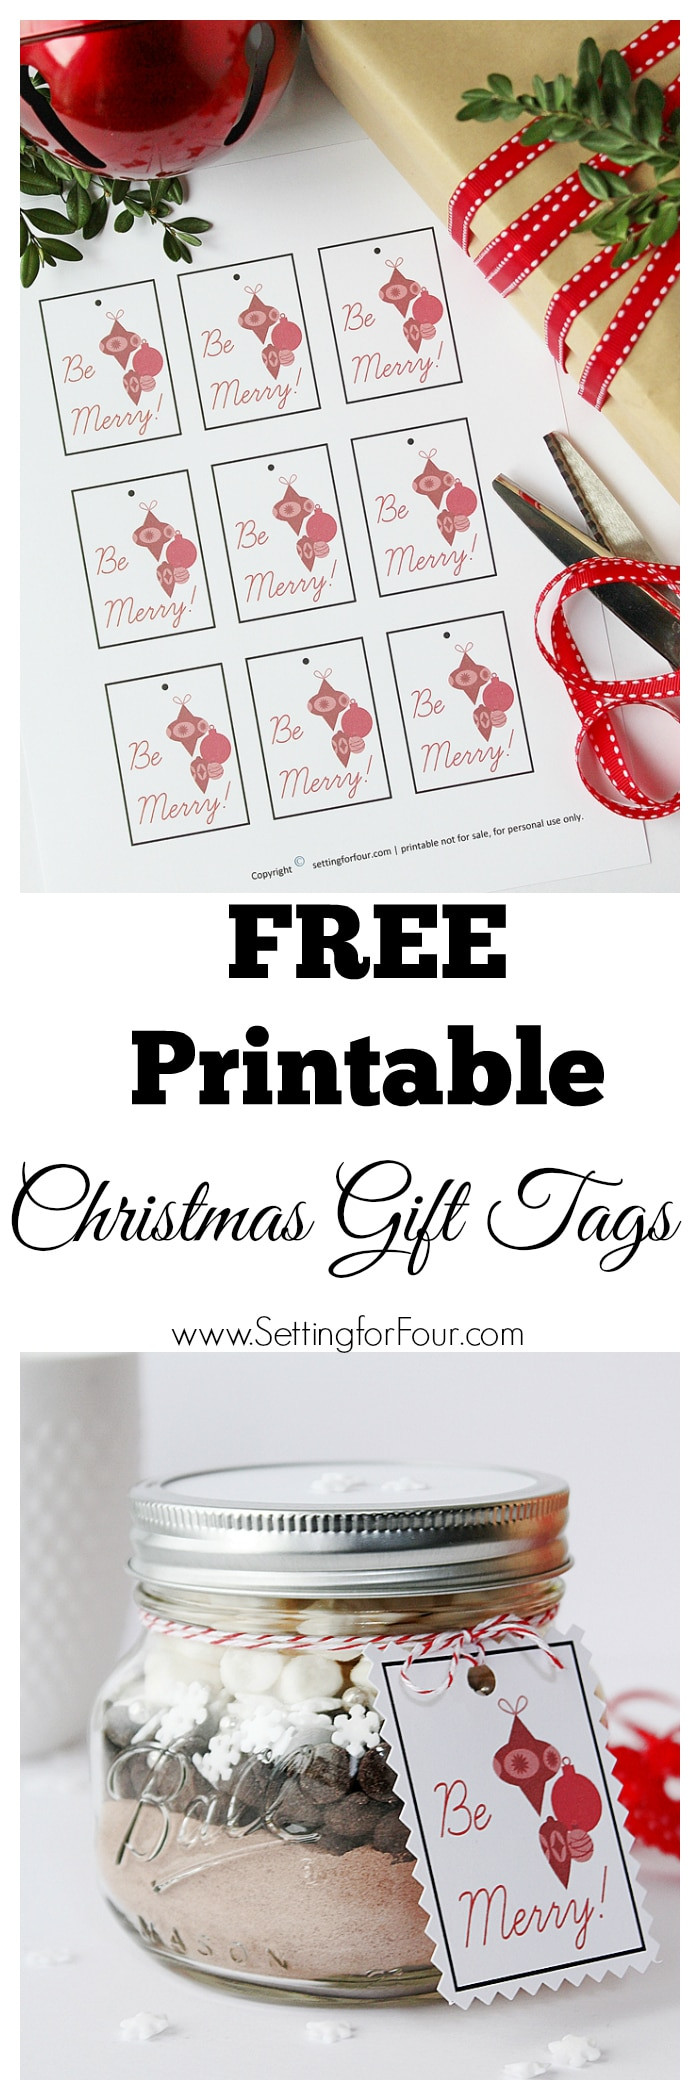 Best ideas about DIY Gift Tags Free Printable . Save or Pin Free Printable Christmas Gift Tags Setting for Four Now.